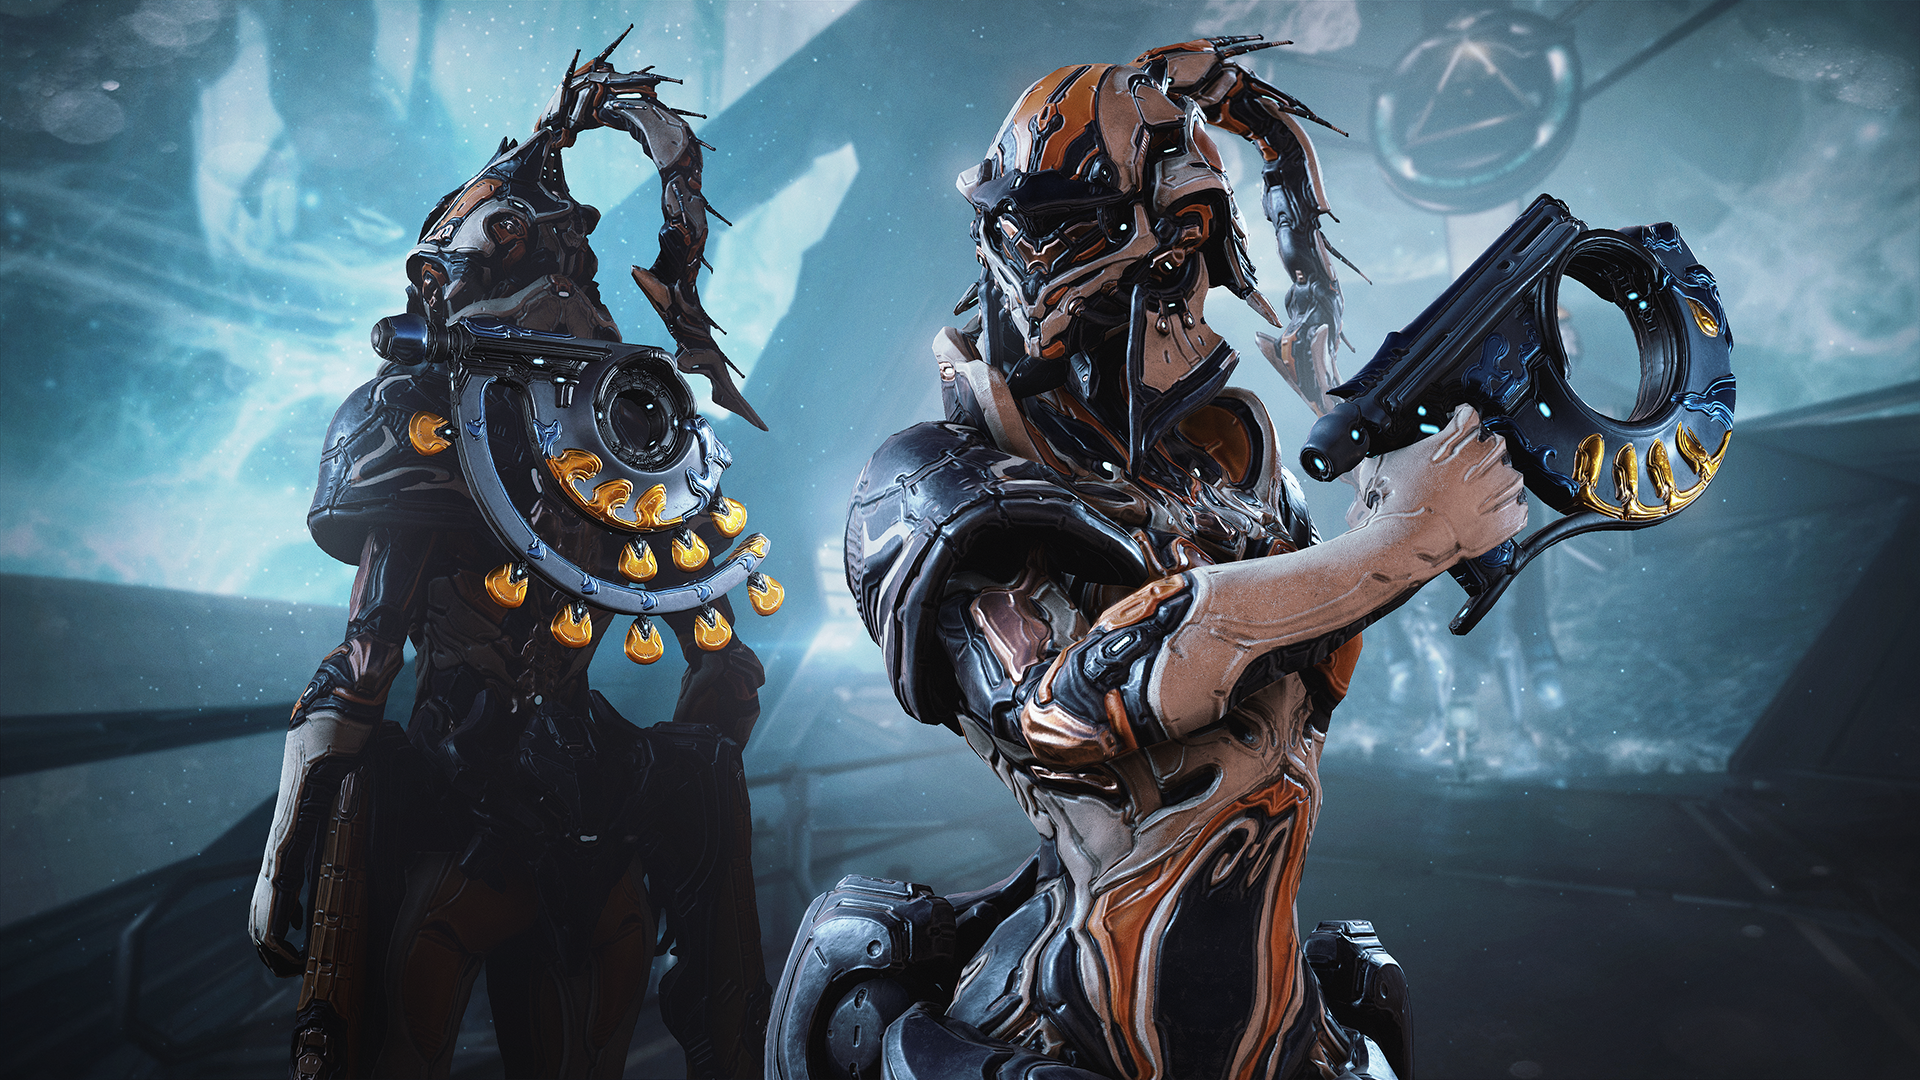 Warframe June 30 Update, Warframe June 30 Update Now Out, Brings It to 1.85 and The Deadlock Protocol Content, MP1st, MP1st